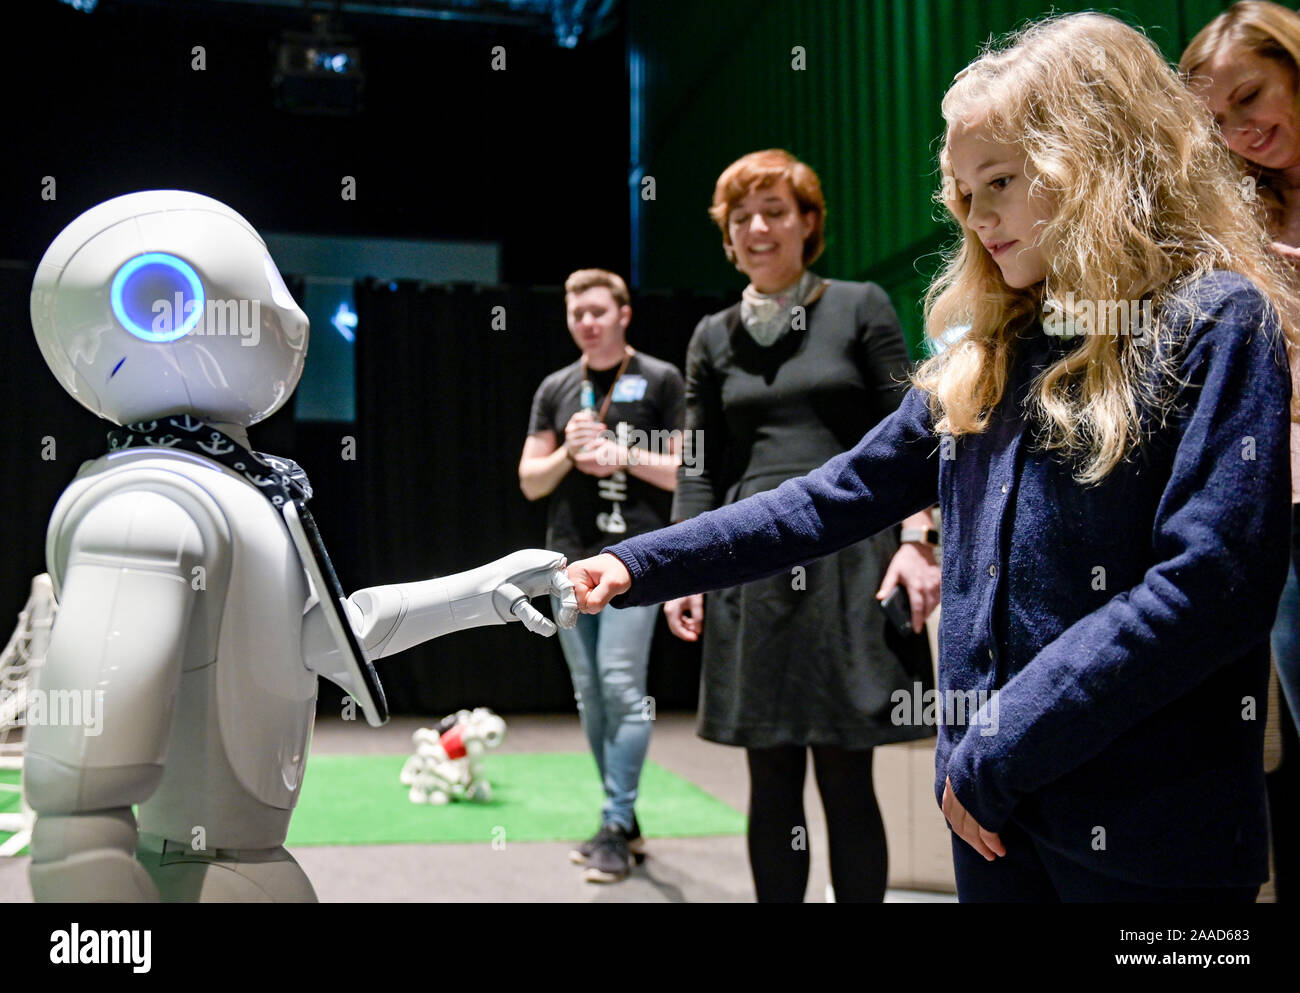 Robot dating